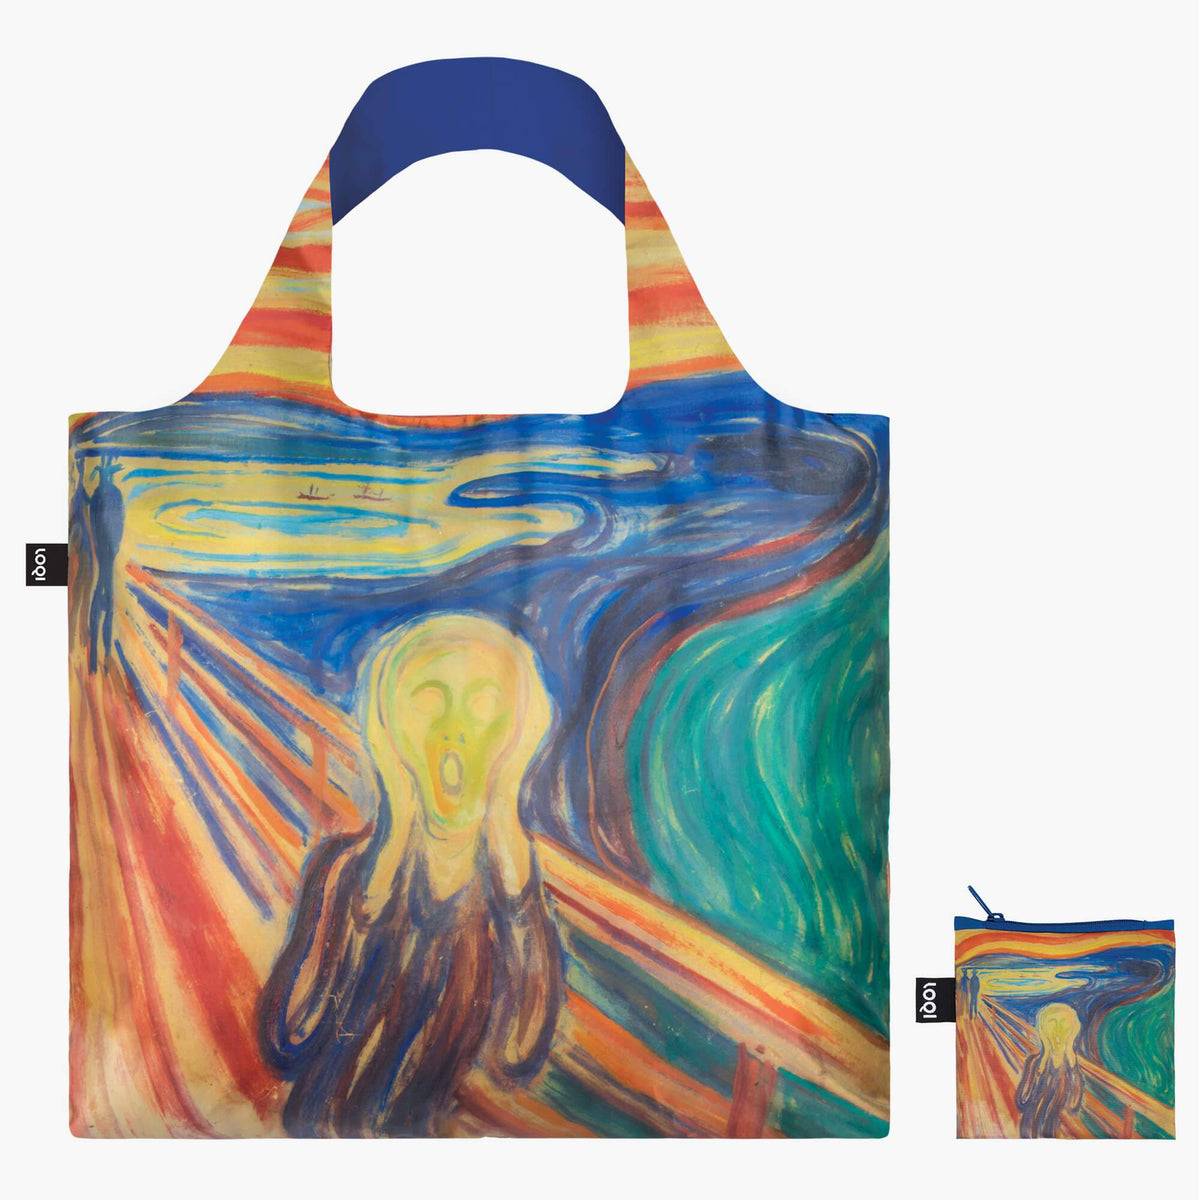 LOQI Edvard Munch The Scream, 1910 Bag with zip pocket